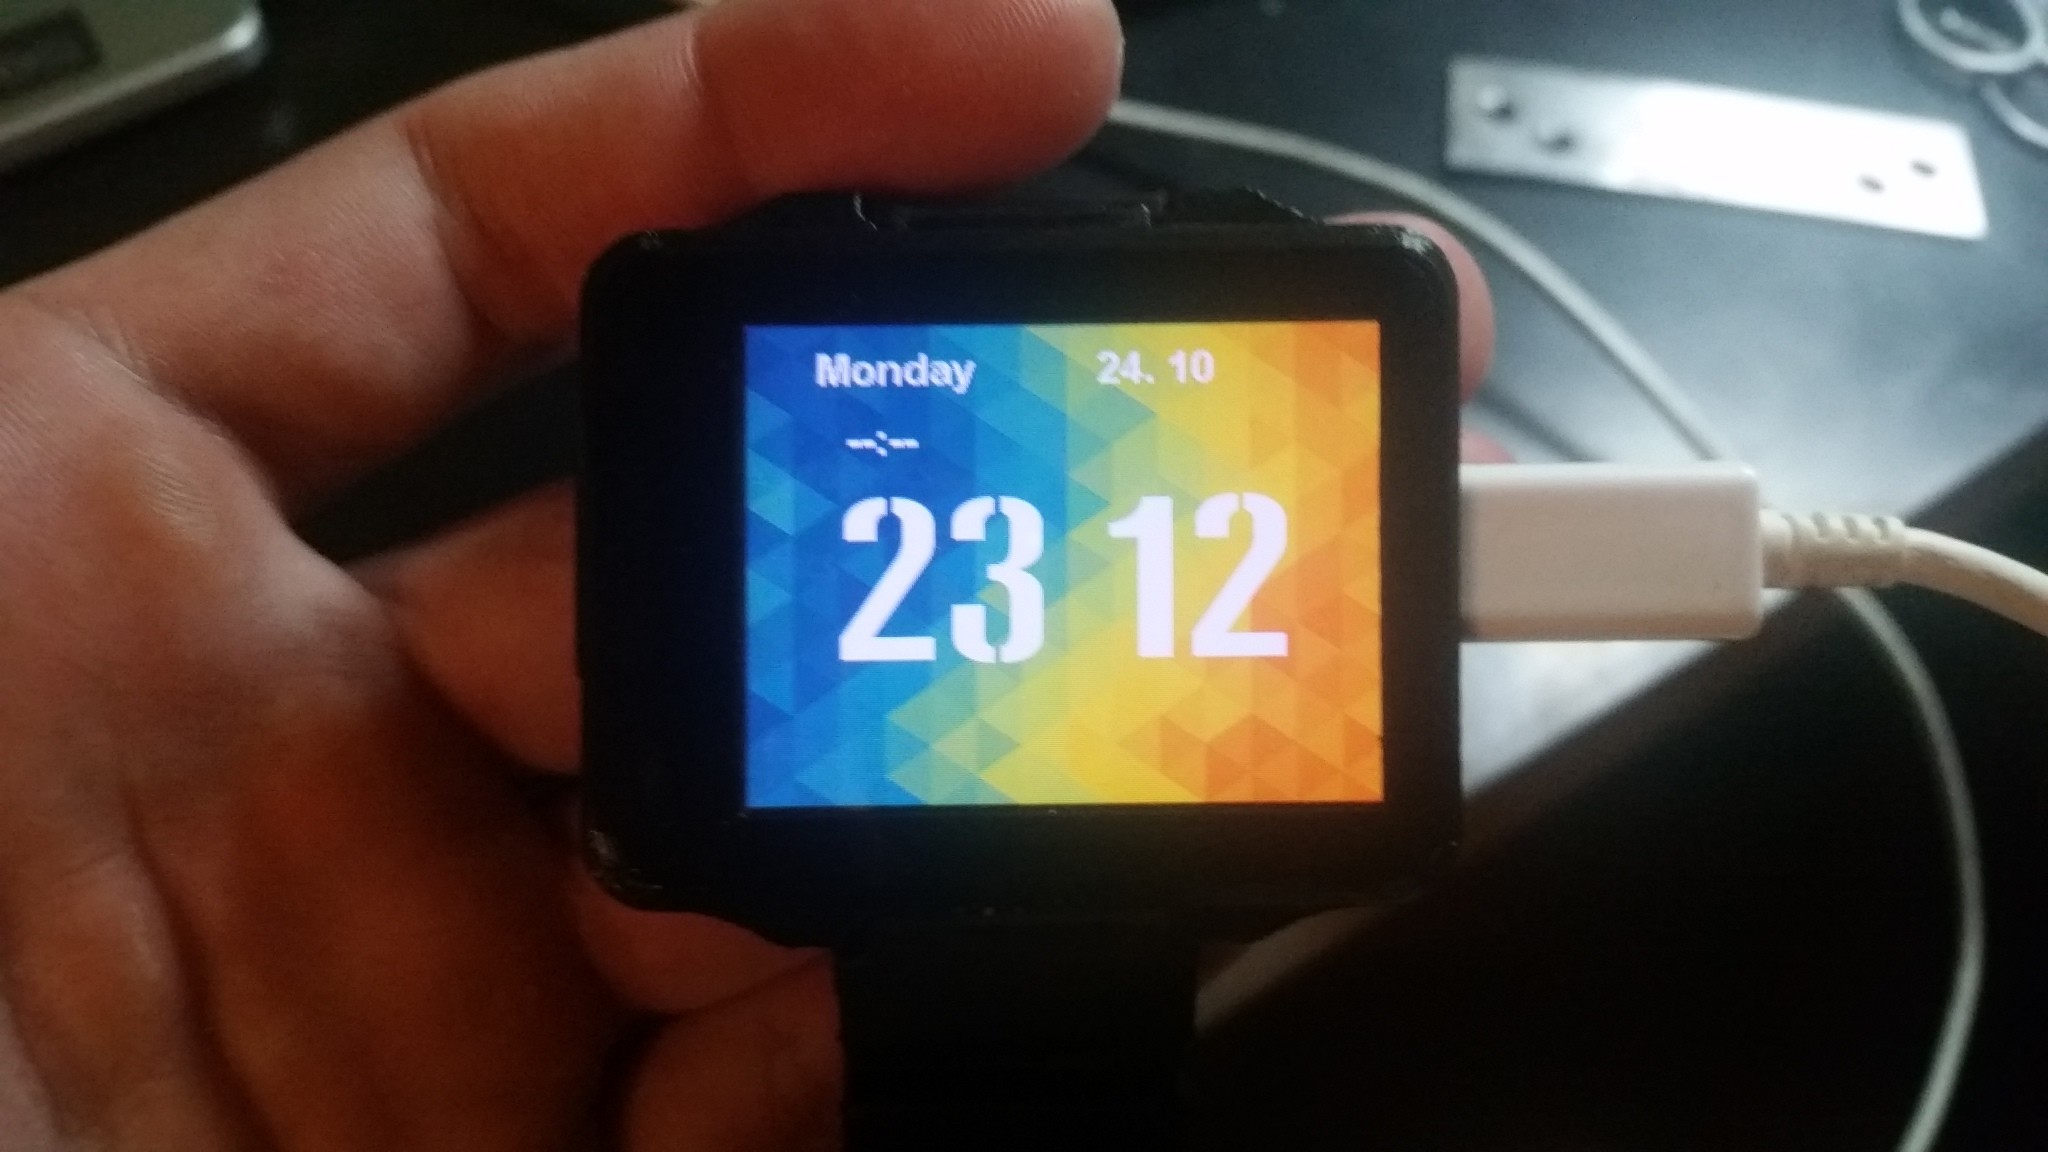 Nwatch Build And Program Your Own Smartwatch 160326 Elektor Tutorial 1 For Eagle Schematic Design Youtube Labs Magazine